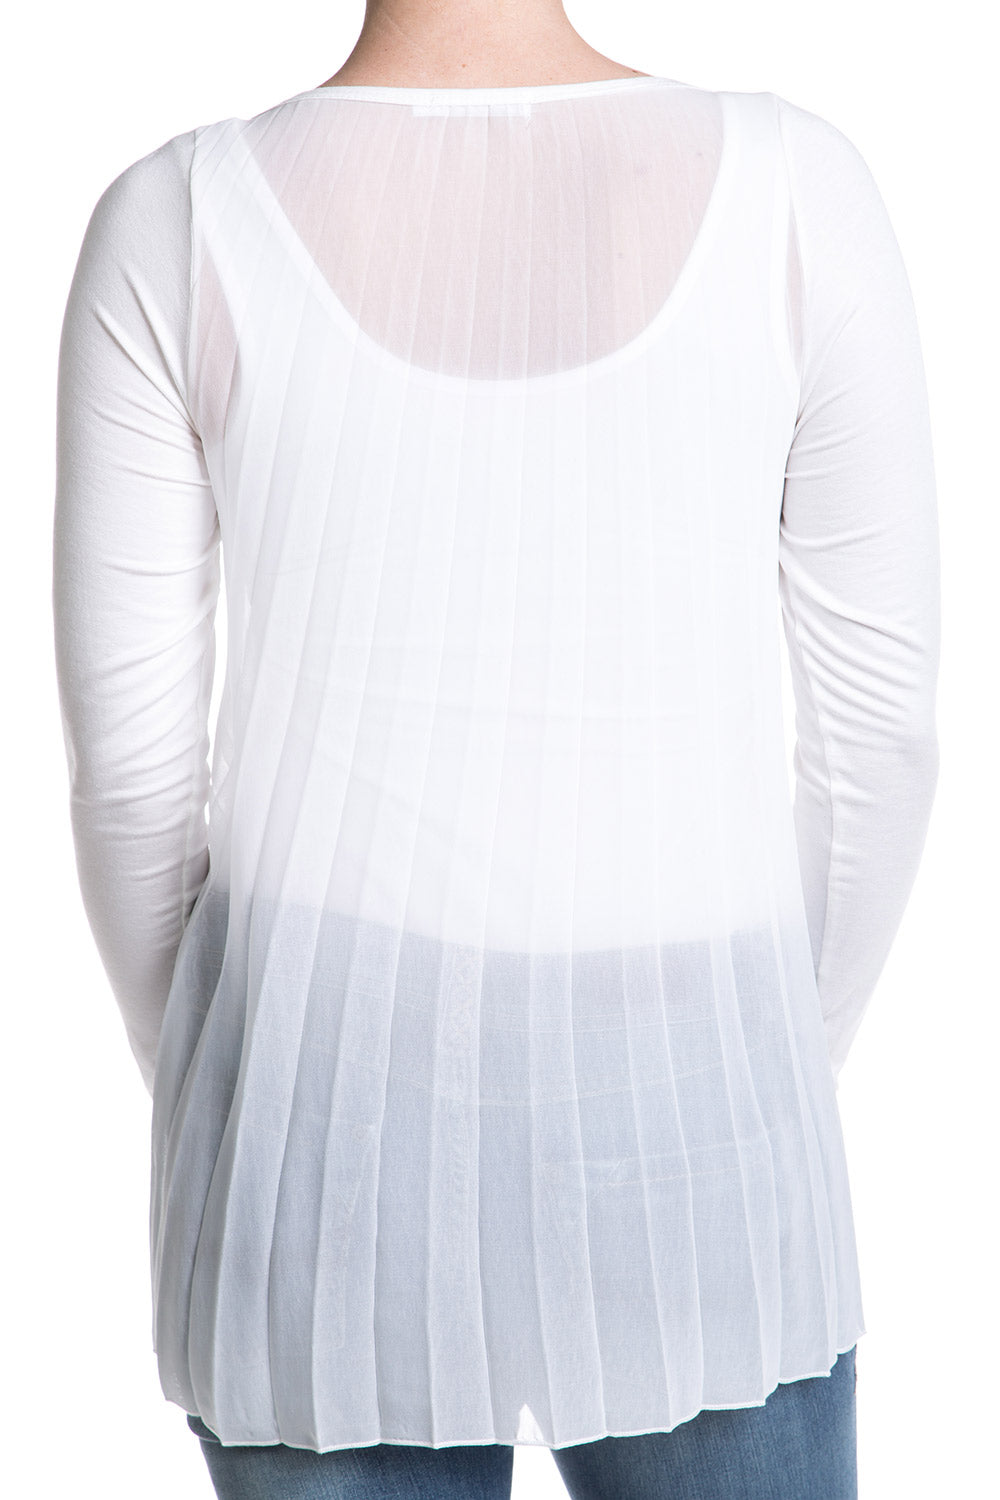 Type 1 Sheer Pleats Top